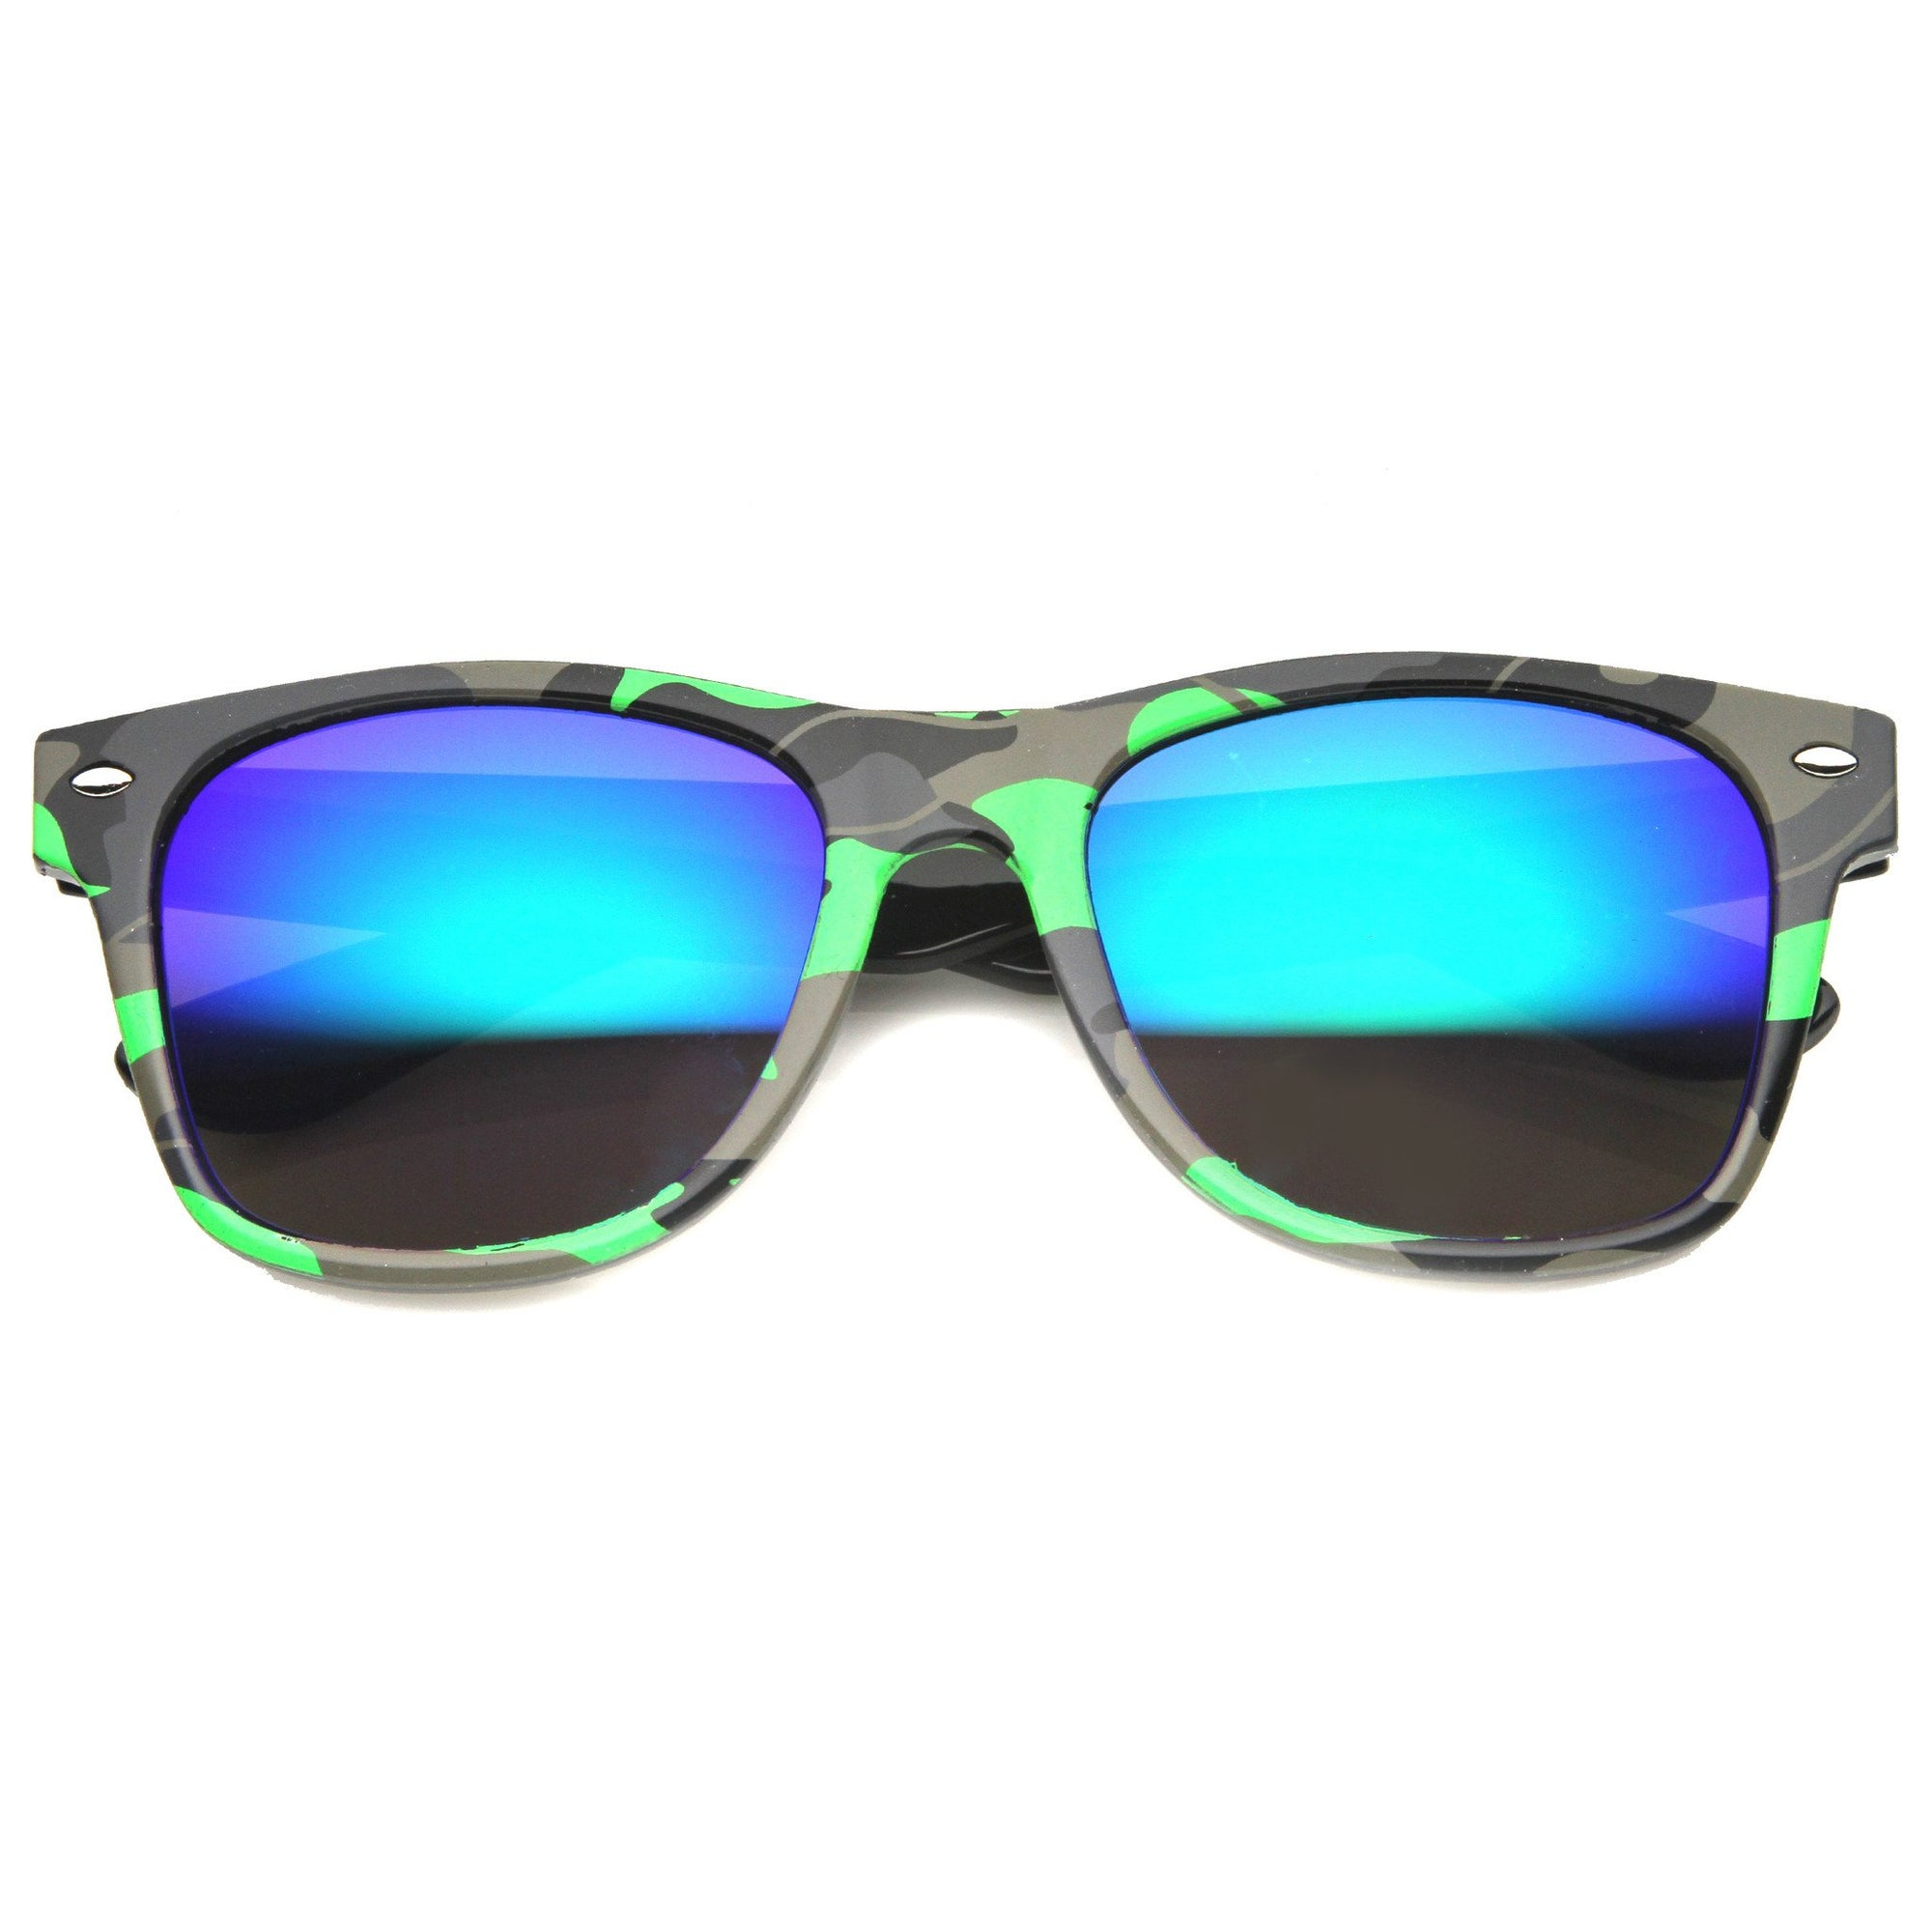 Action Sports Colorful Two-Tone Rectangle Color Mirror Lens Sunglasses Black Fire